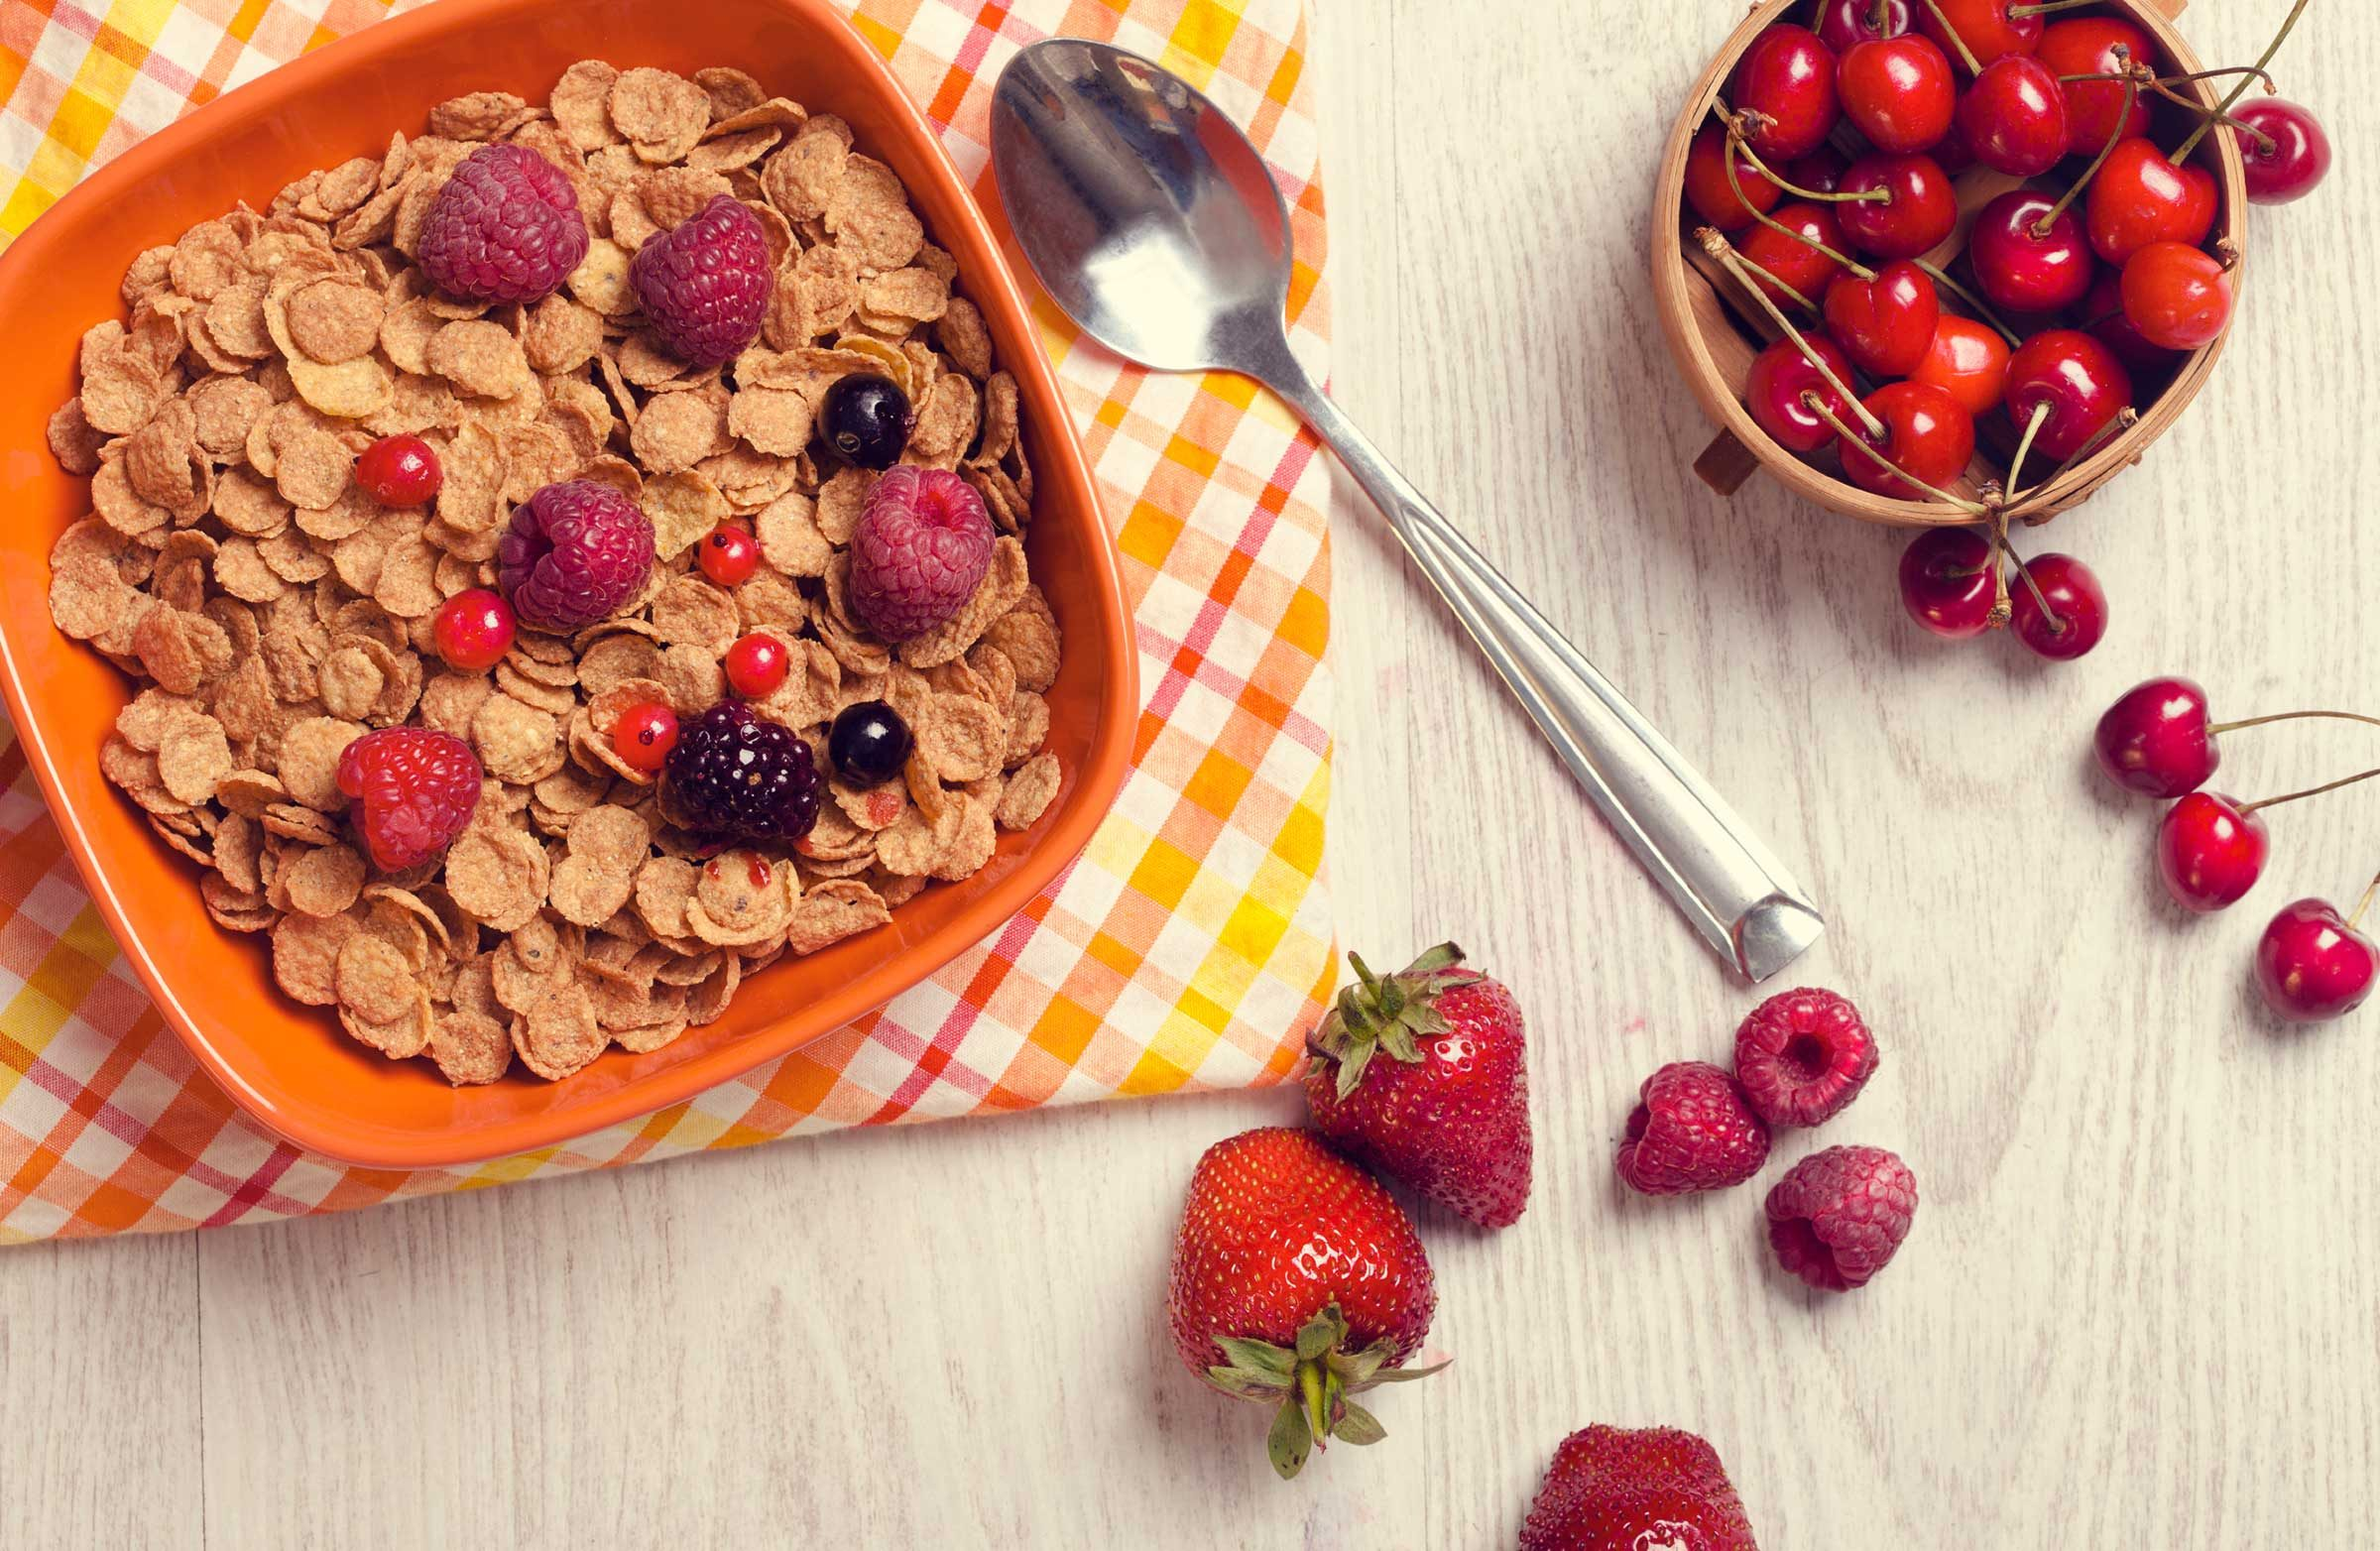 Healthy Cereal For Weight Loss